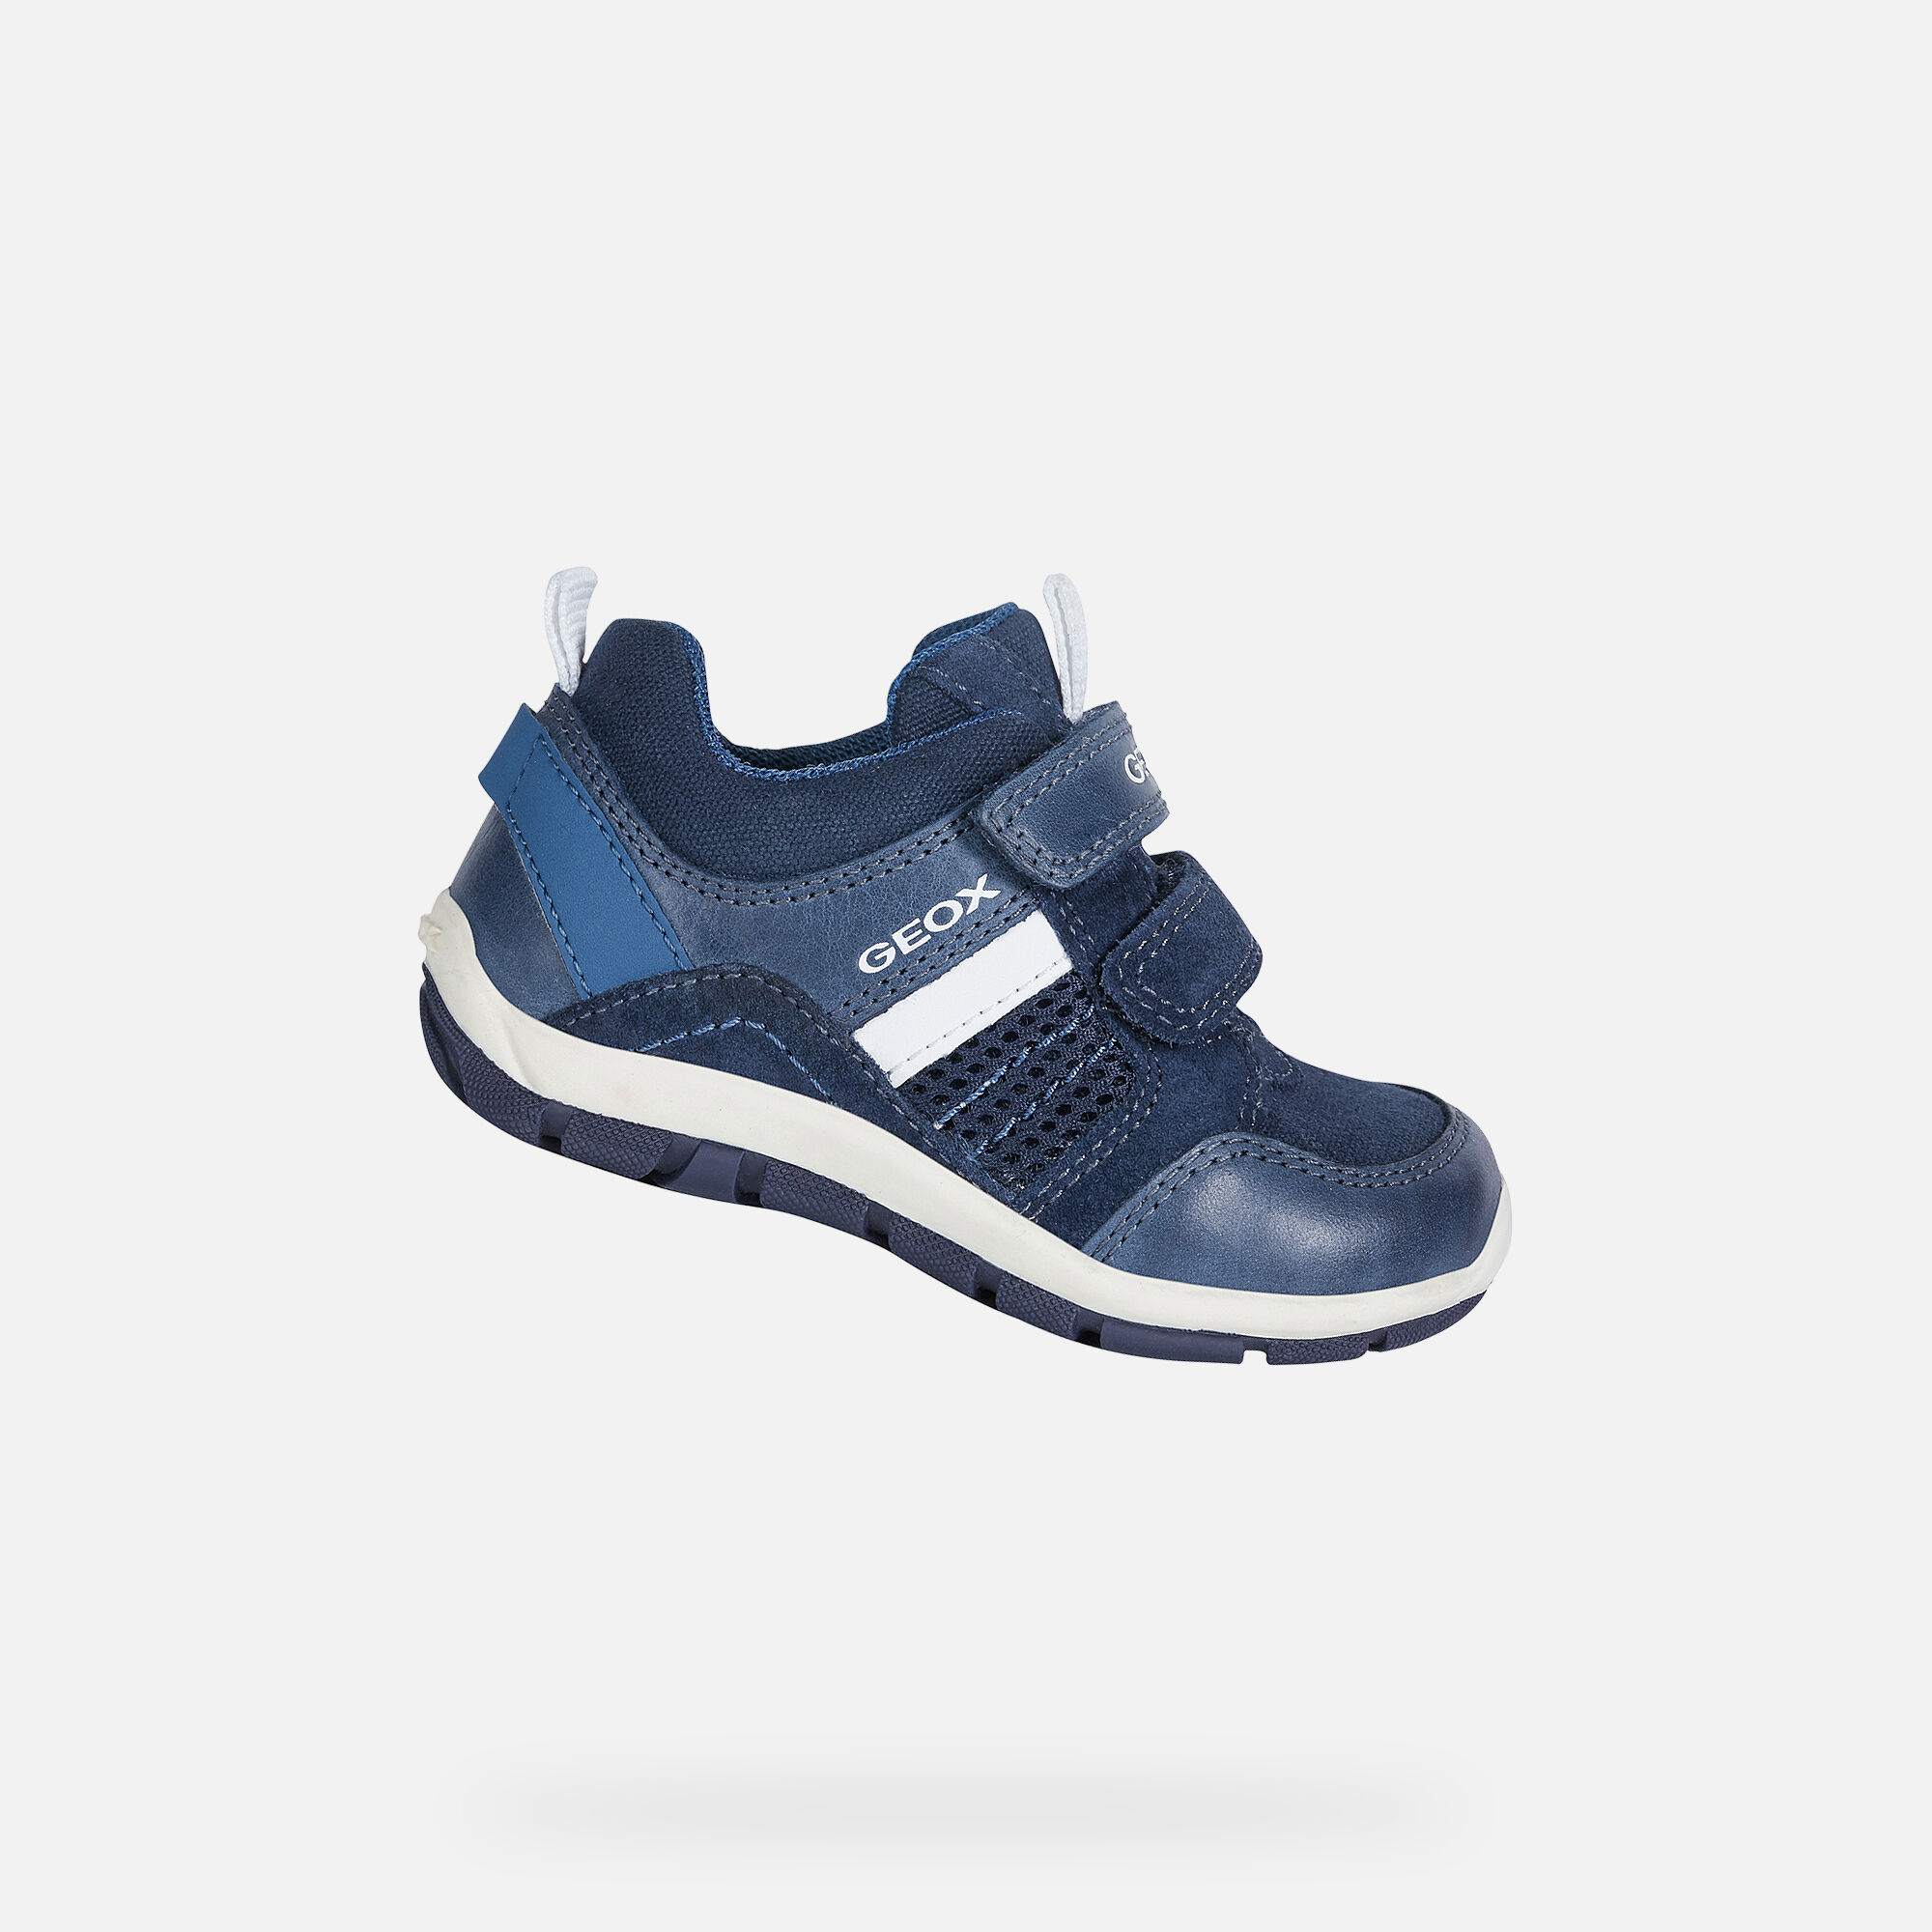 Geox boys shoes ( size 4,5 Toddler